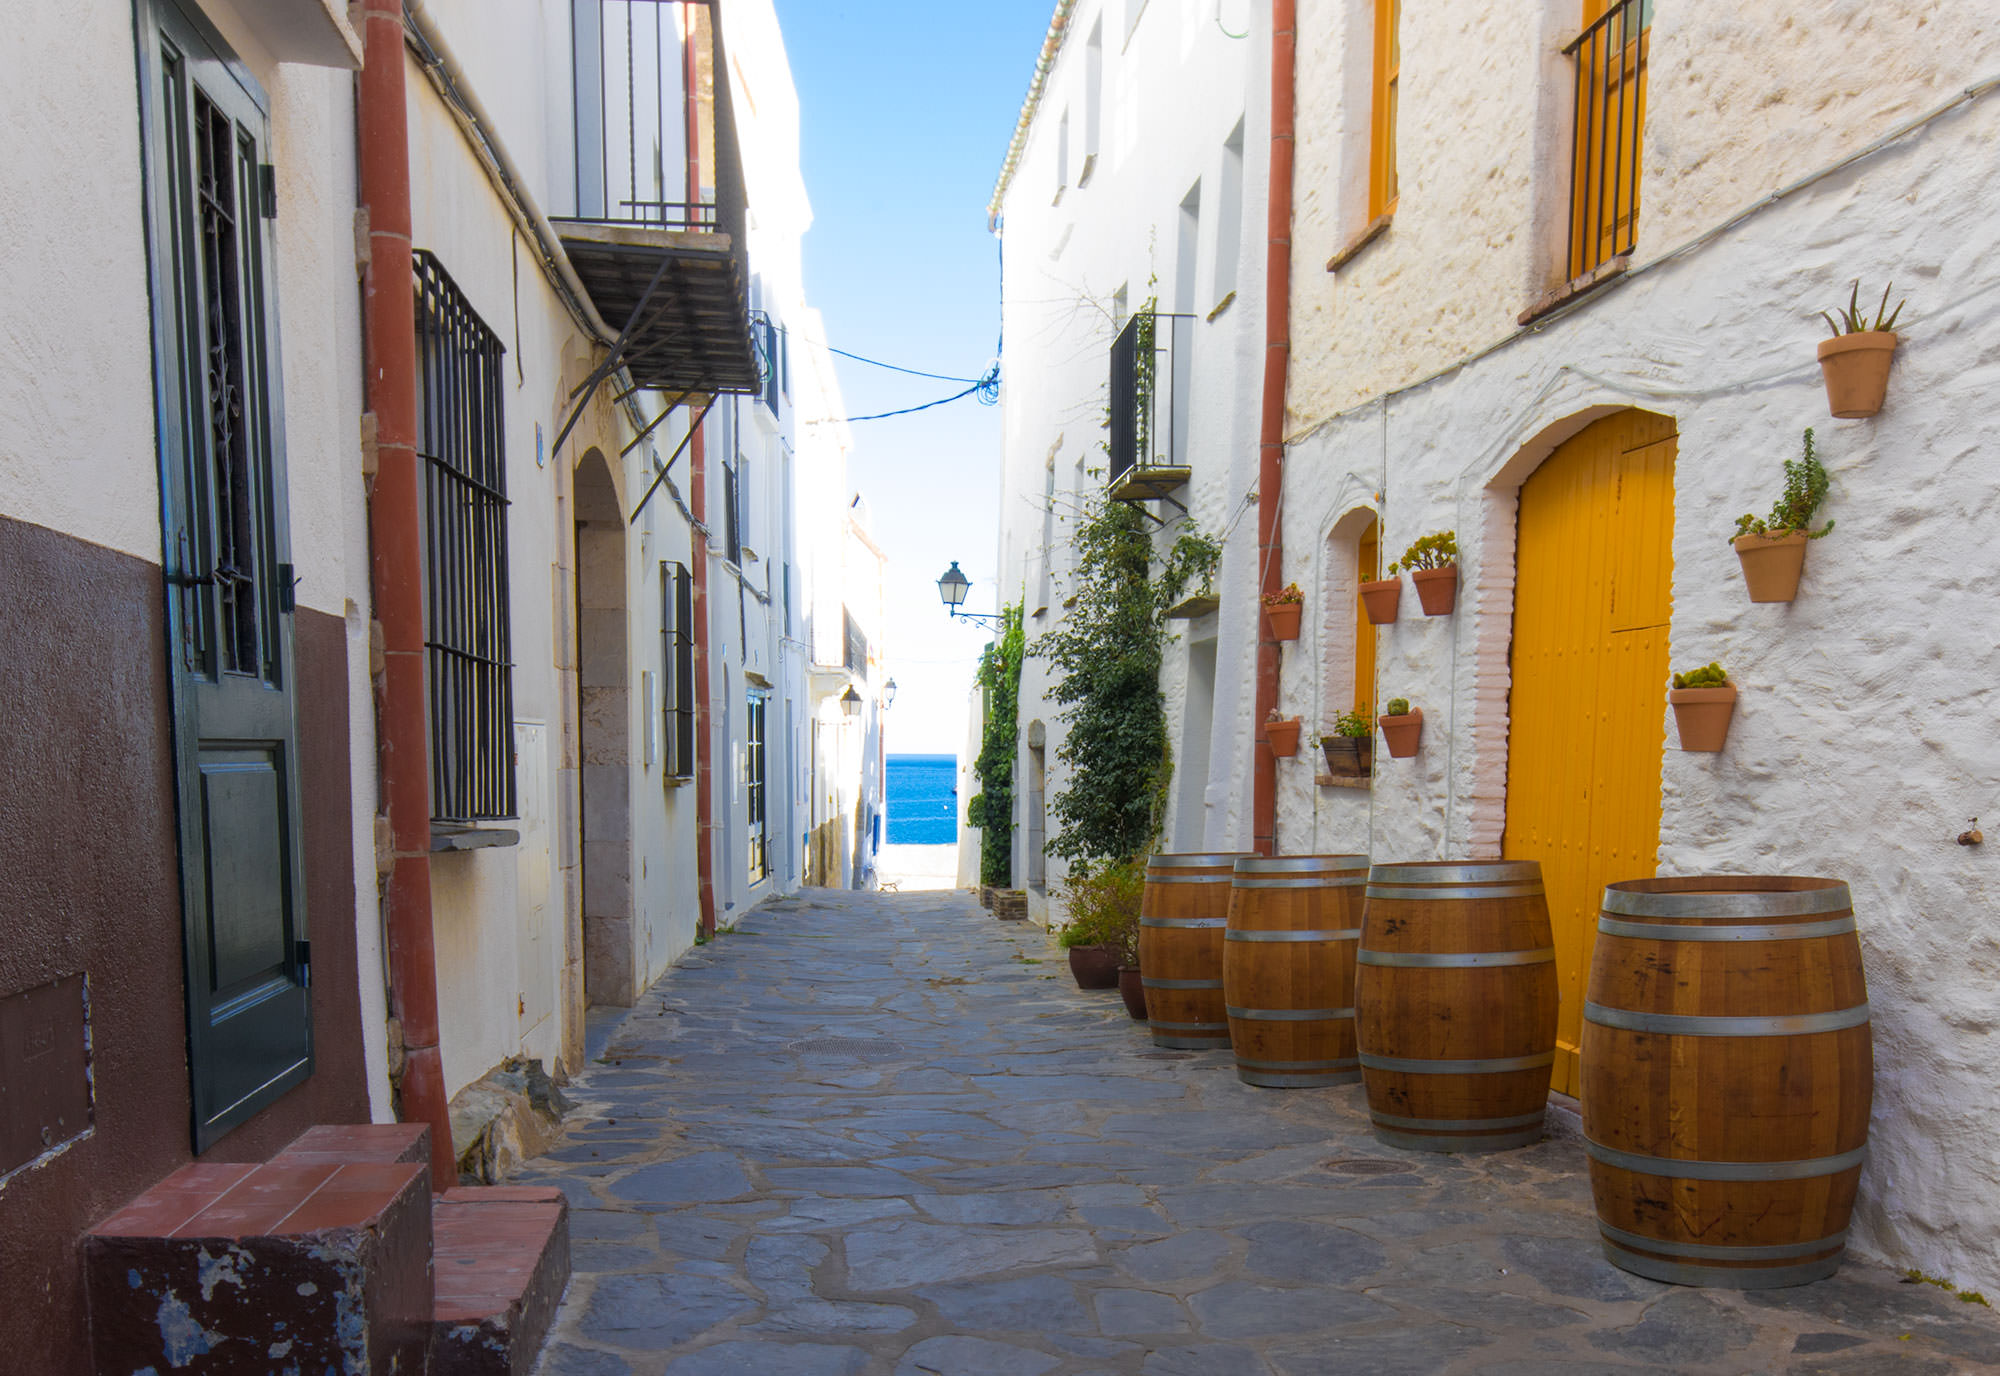 Cadaques, and the Mediterranean